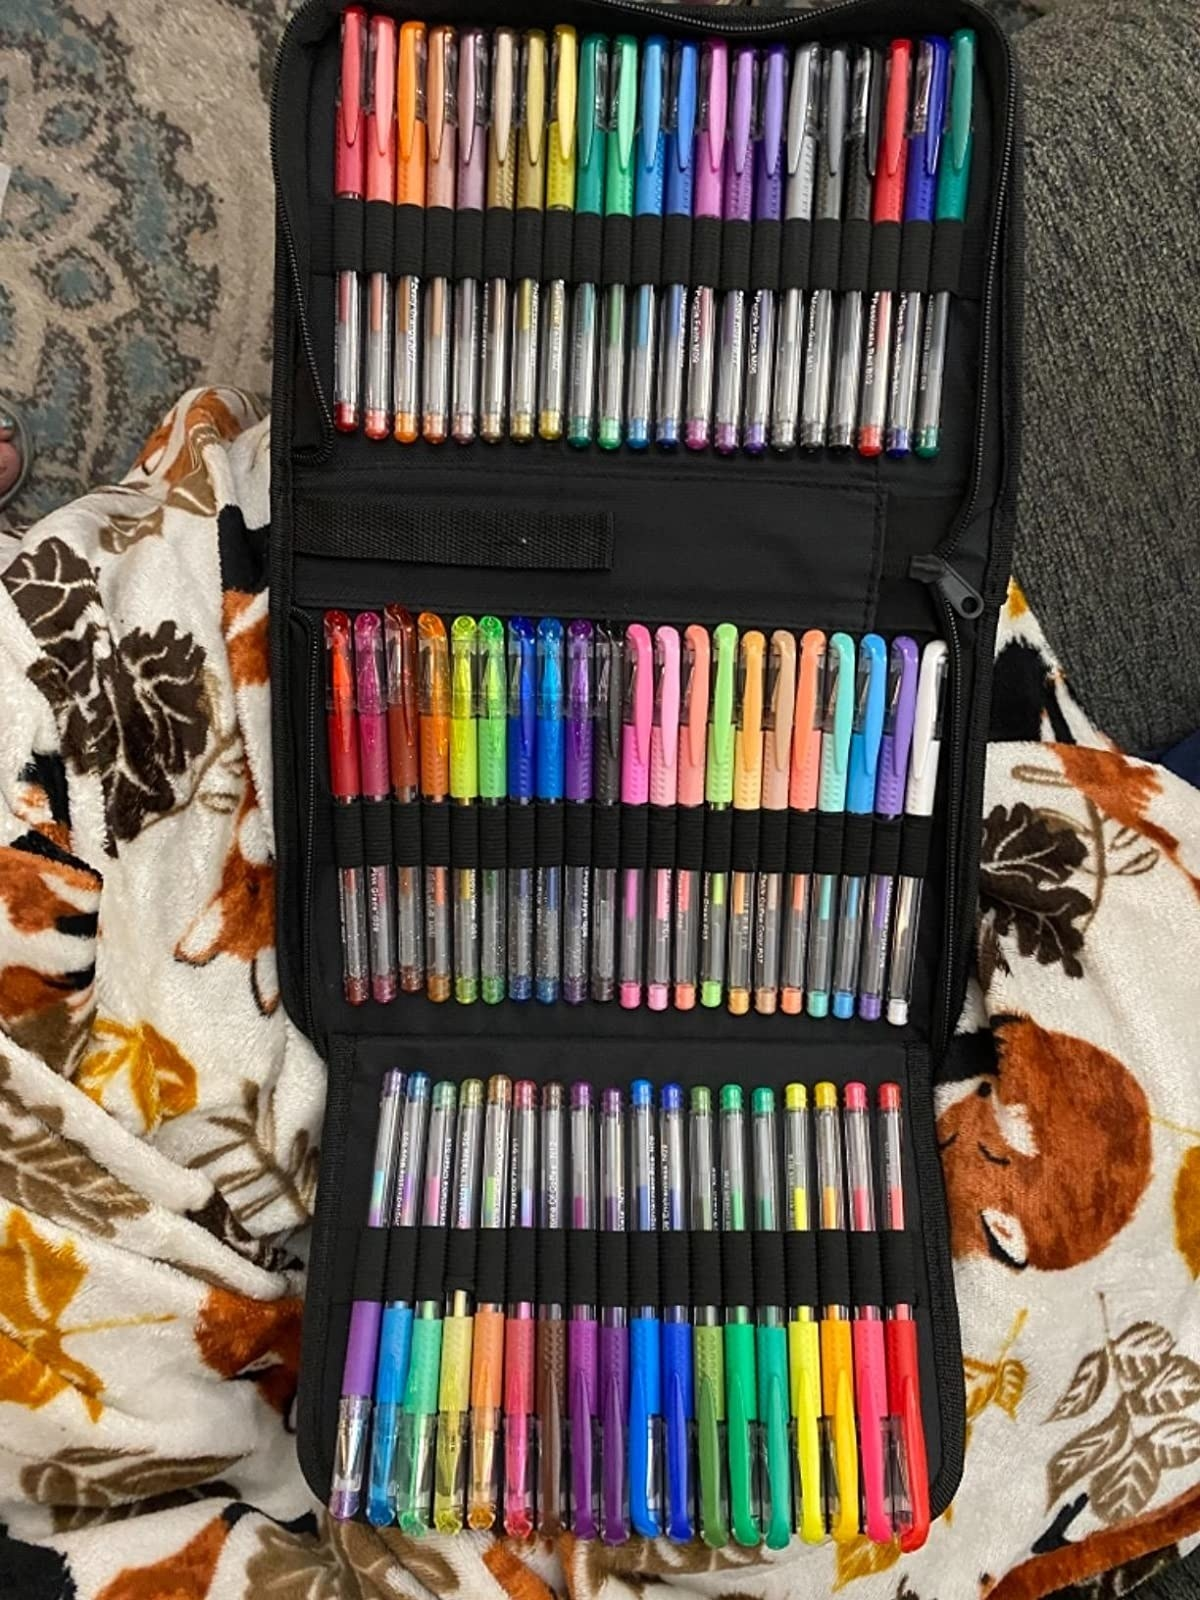 reviewer image of the 122 gel pen pack